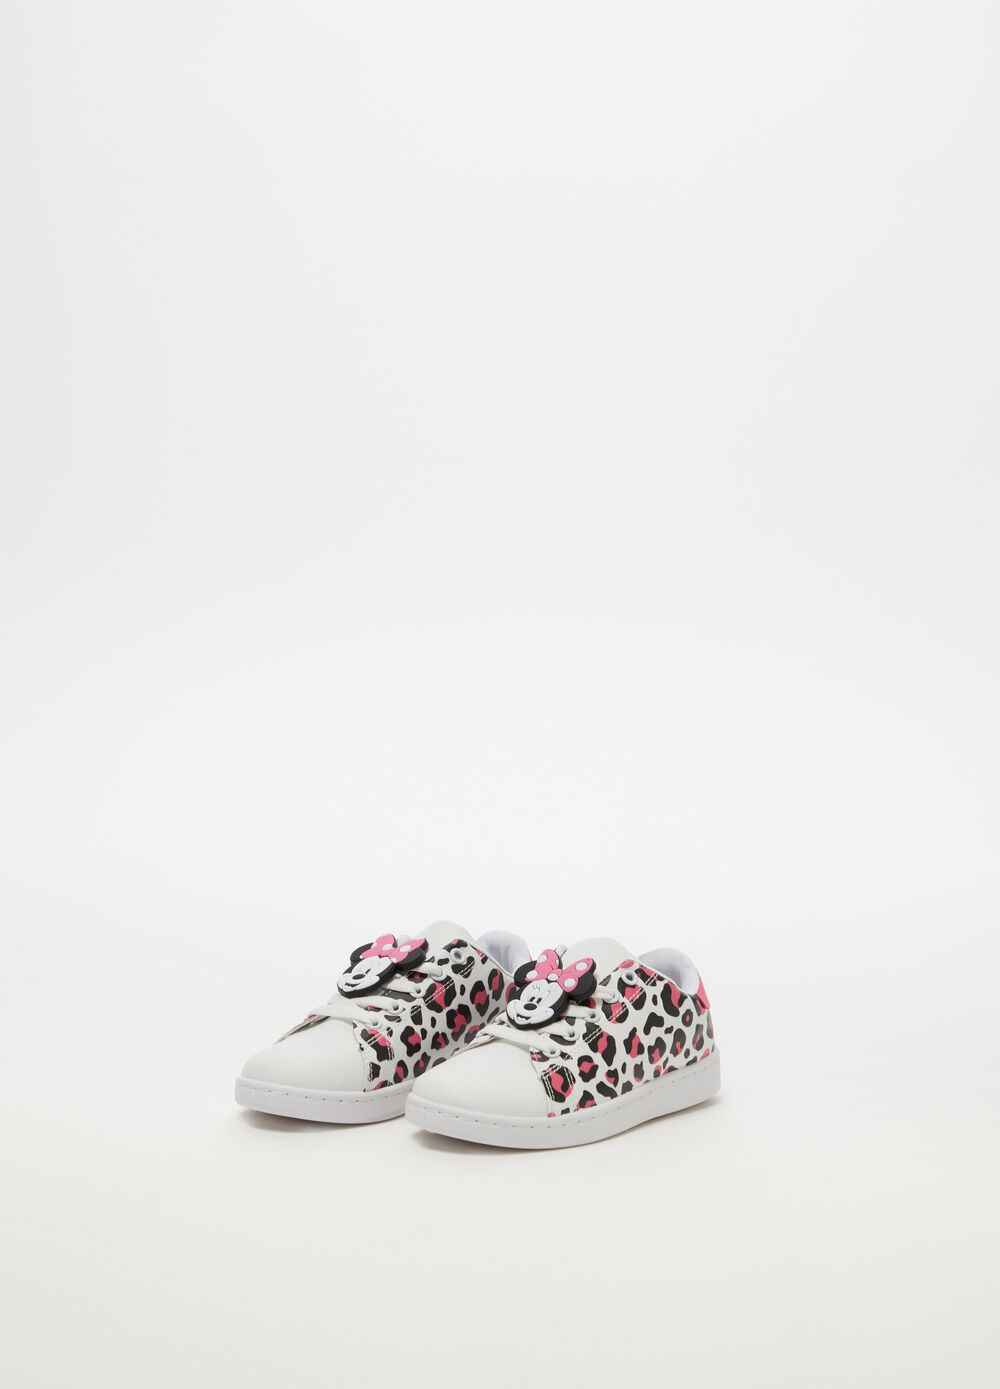 Sneakers with Minnie Mouse pattern and animal print